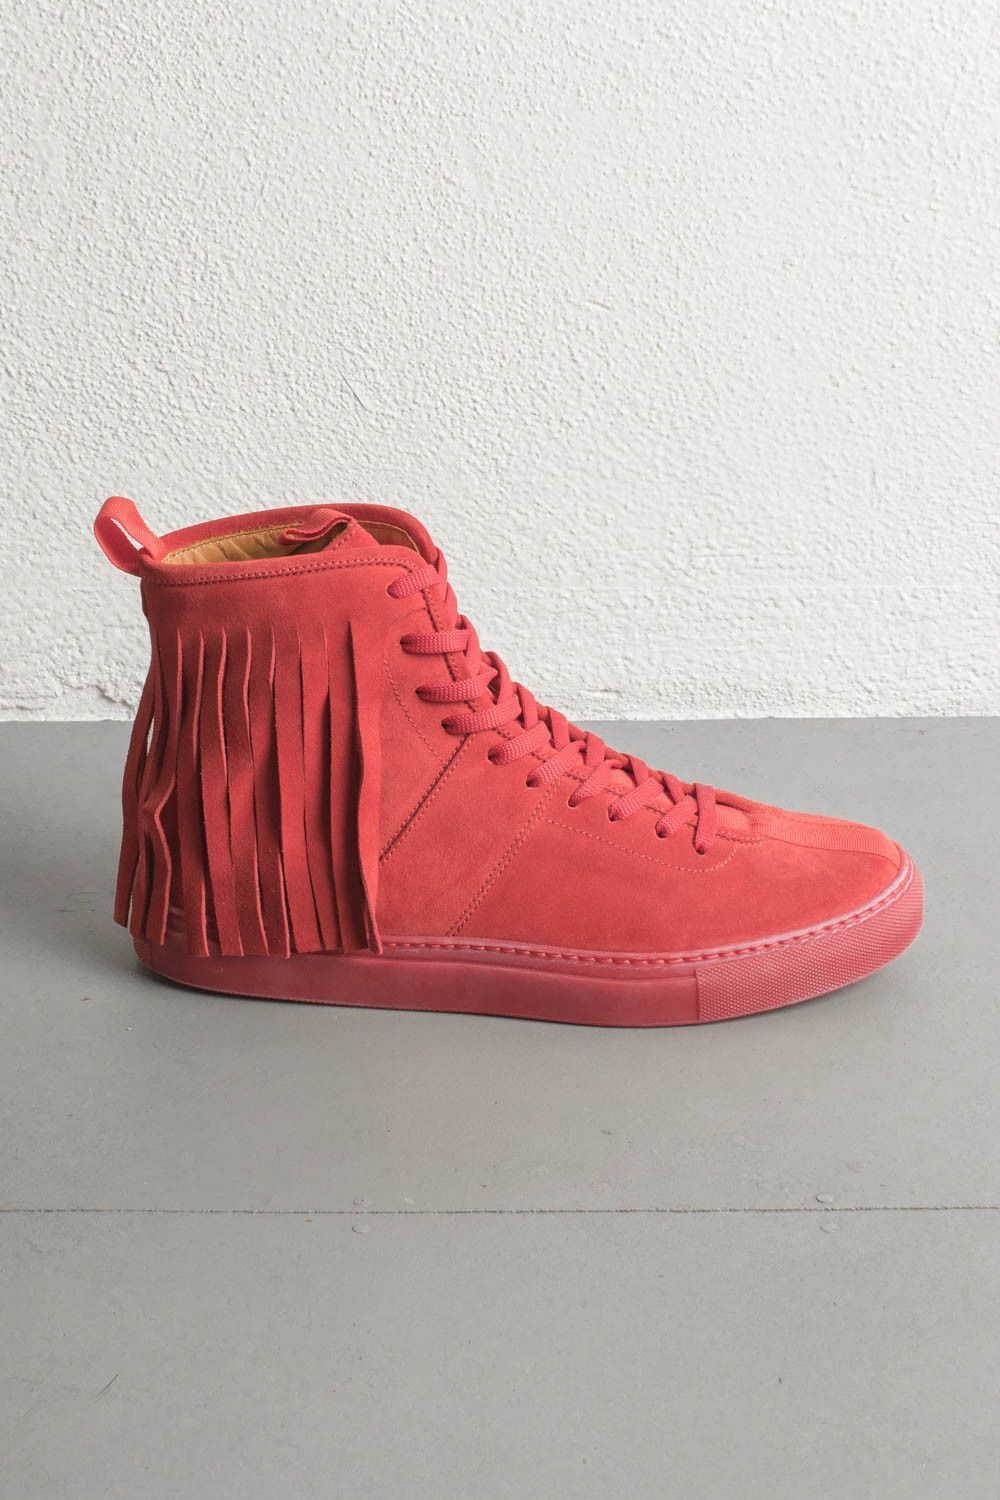 39fbecc46f11d red high top fringe sneakers by daniel patrick Red High Tops